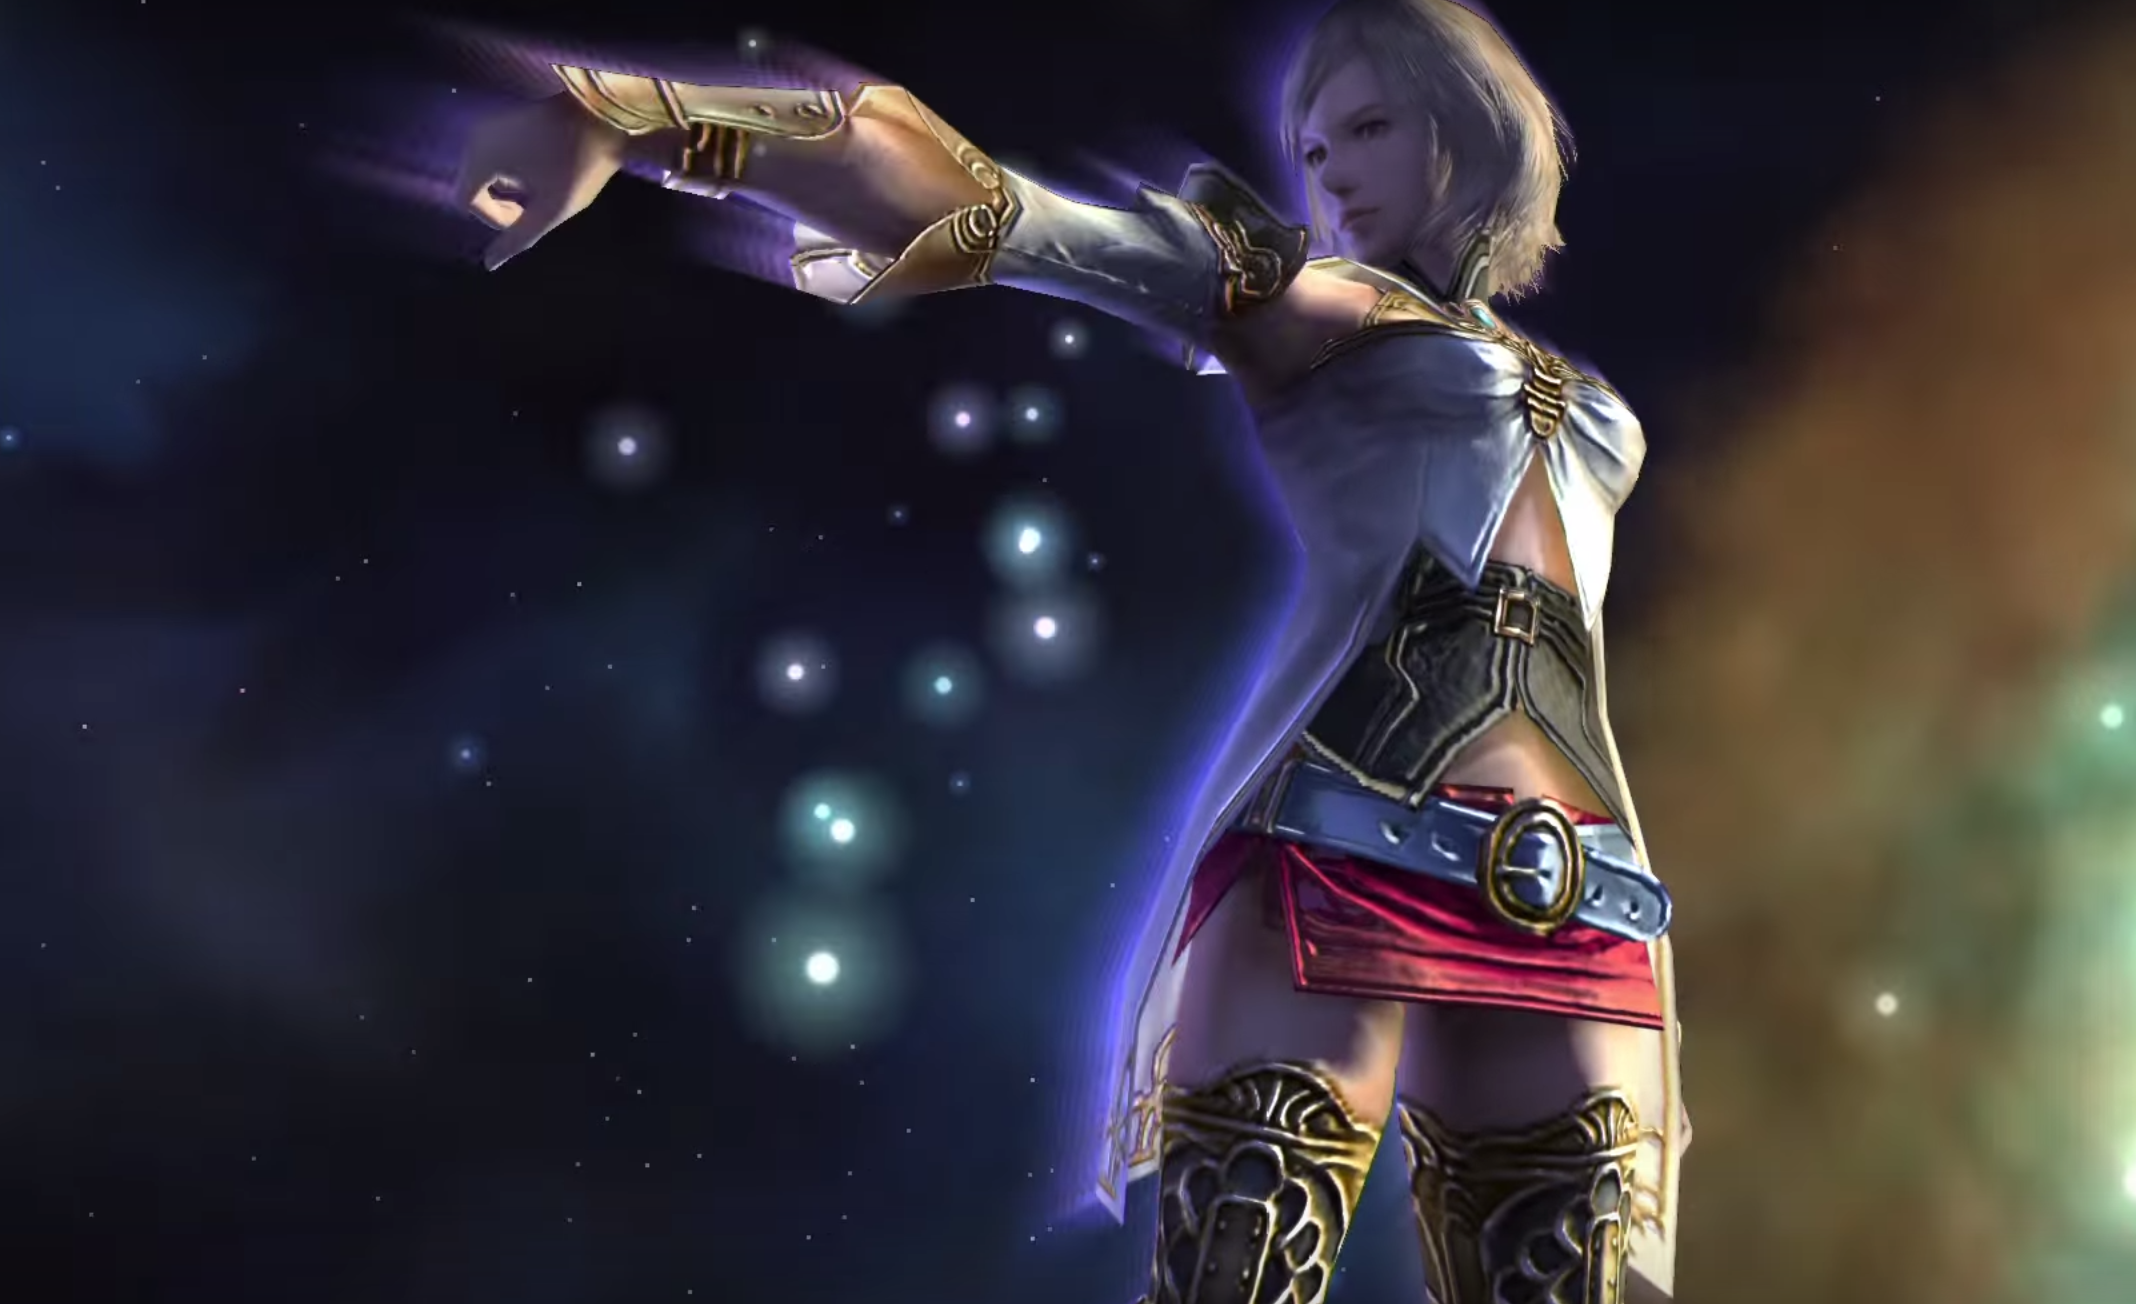 Final Fantasy XII: The Zodiac Age – Remaster für PS4 angekündigt